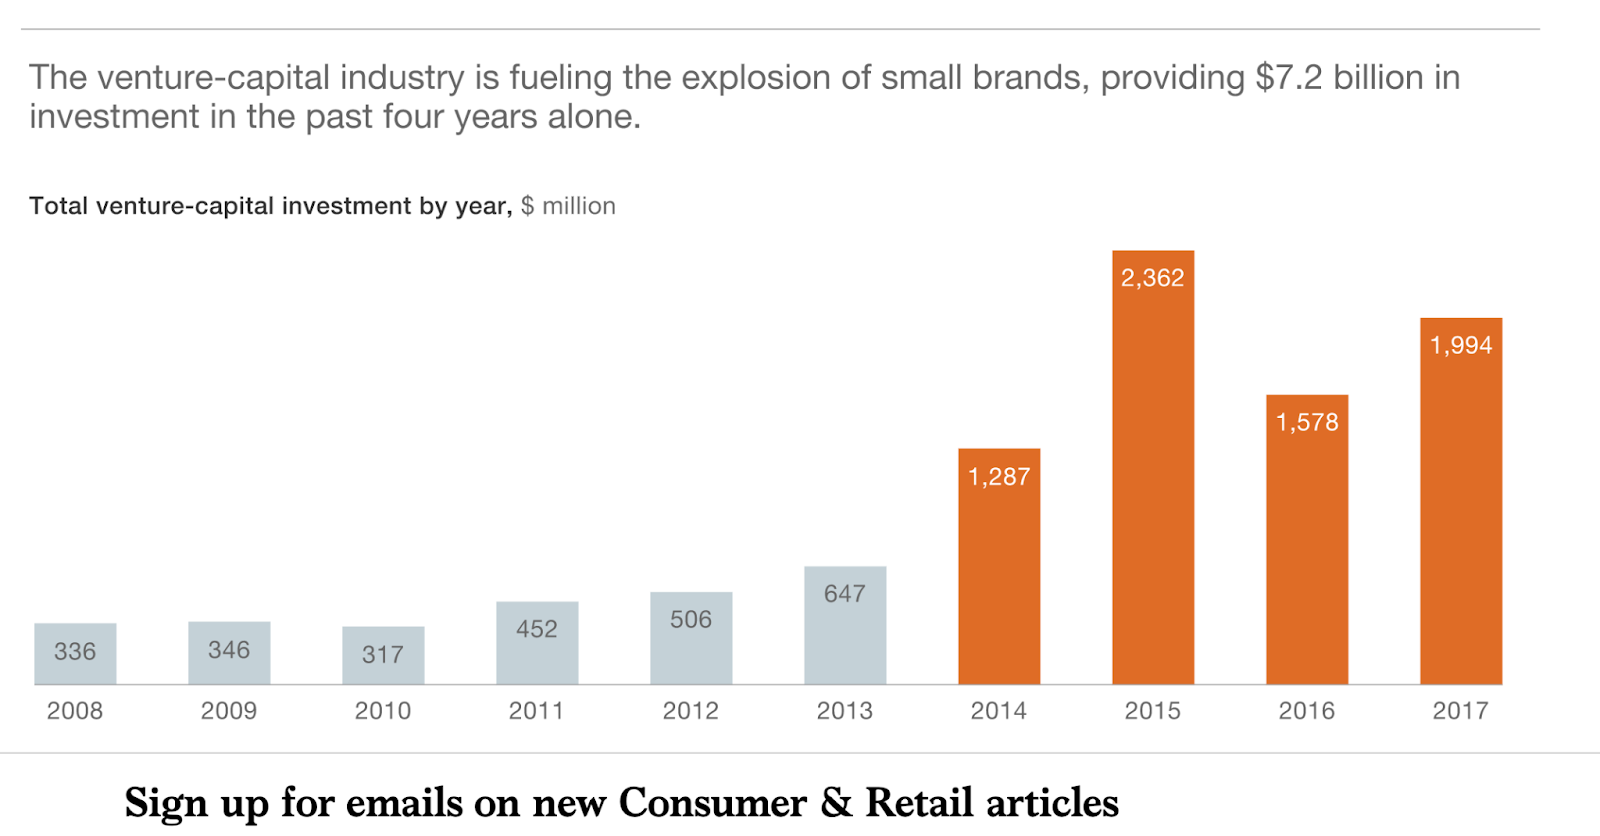 Source: McKinsey, The new model for consumer goods